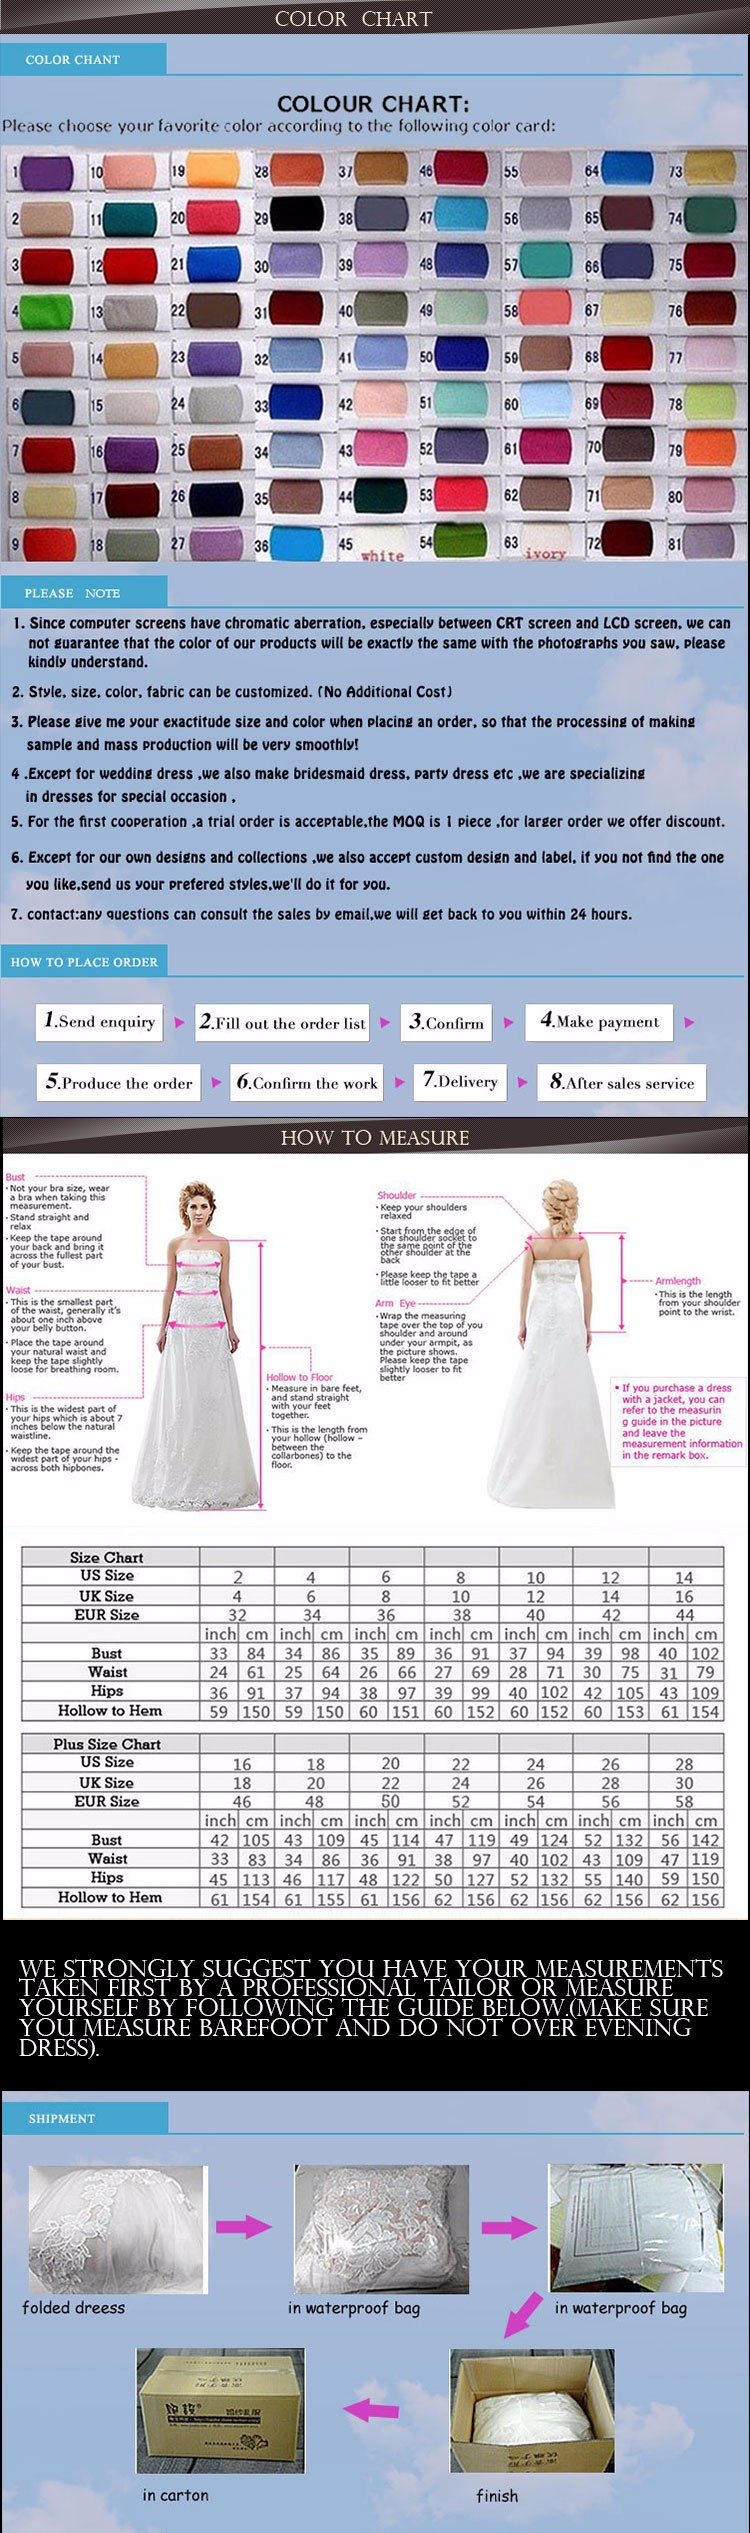 Tiamero beaded curtain round neckline lace decent organza fabric tiamero beaded curtain round neckline lace decent organza fabric sweetheart bridesmaid wedding gown dress ombrellifo Image collections